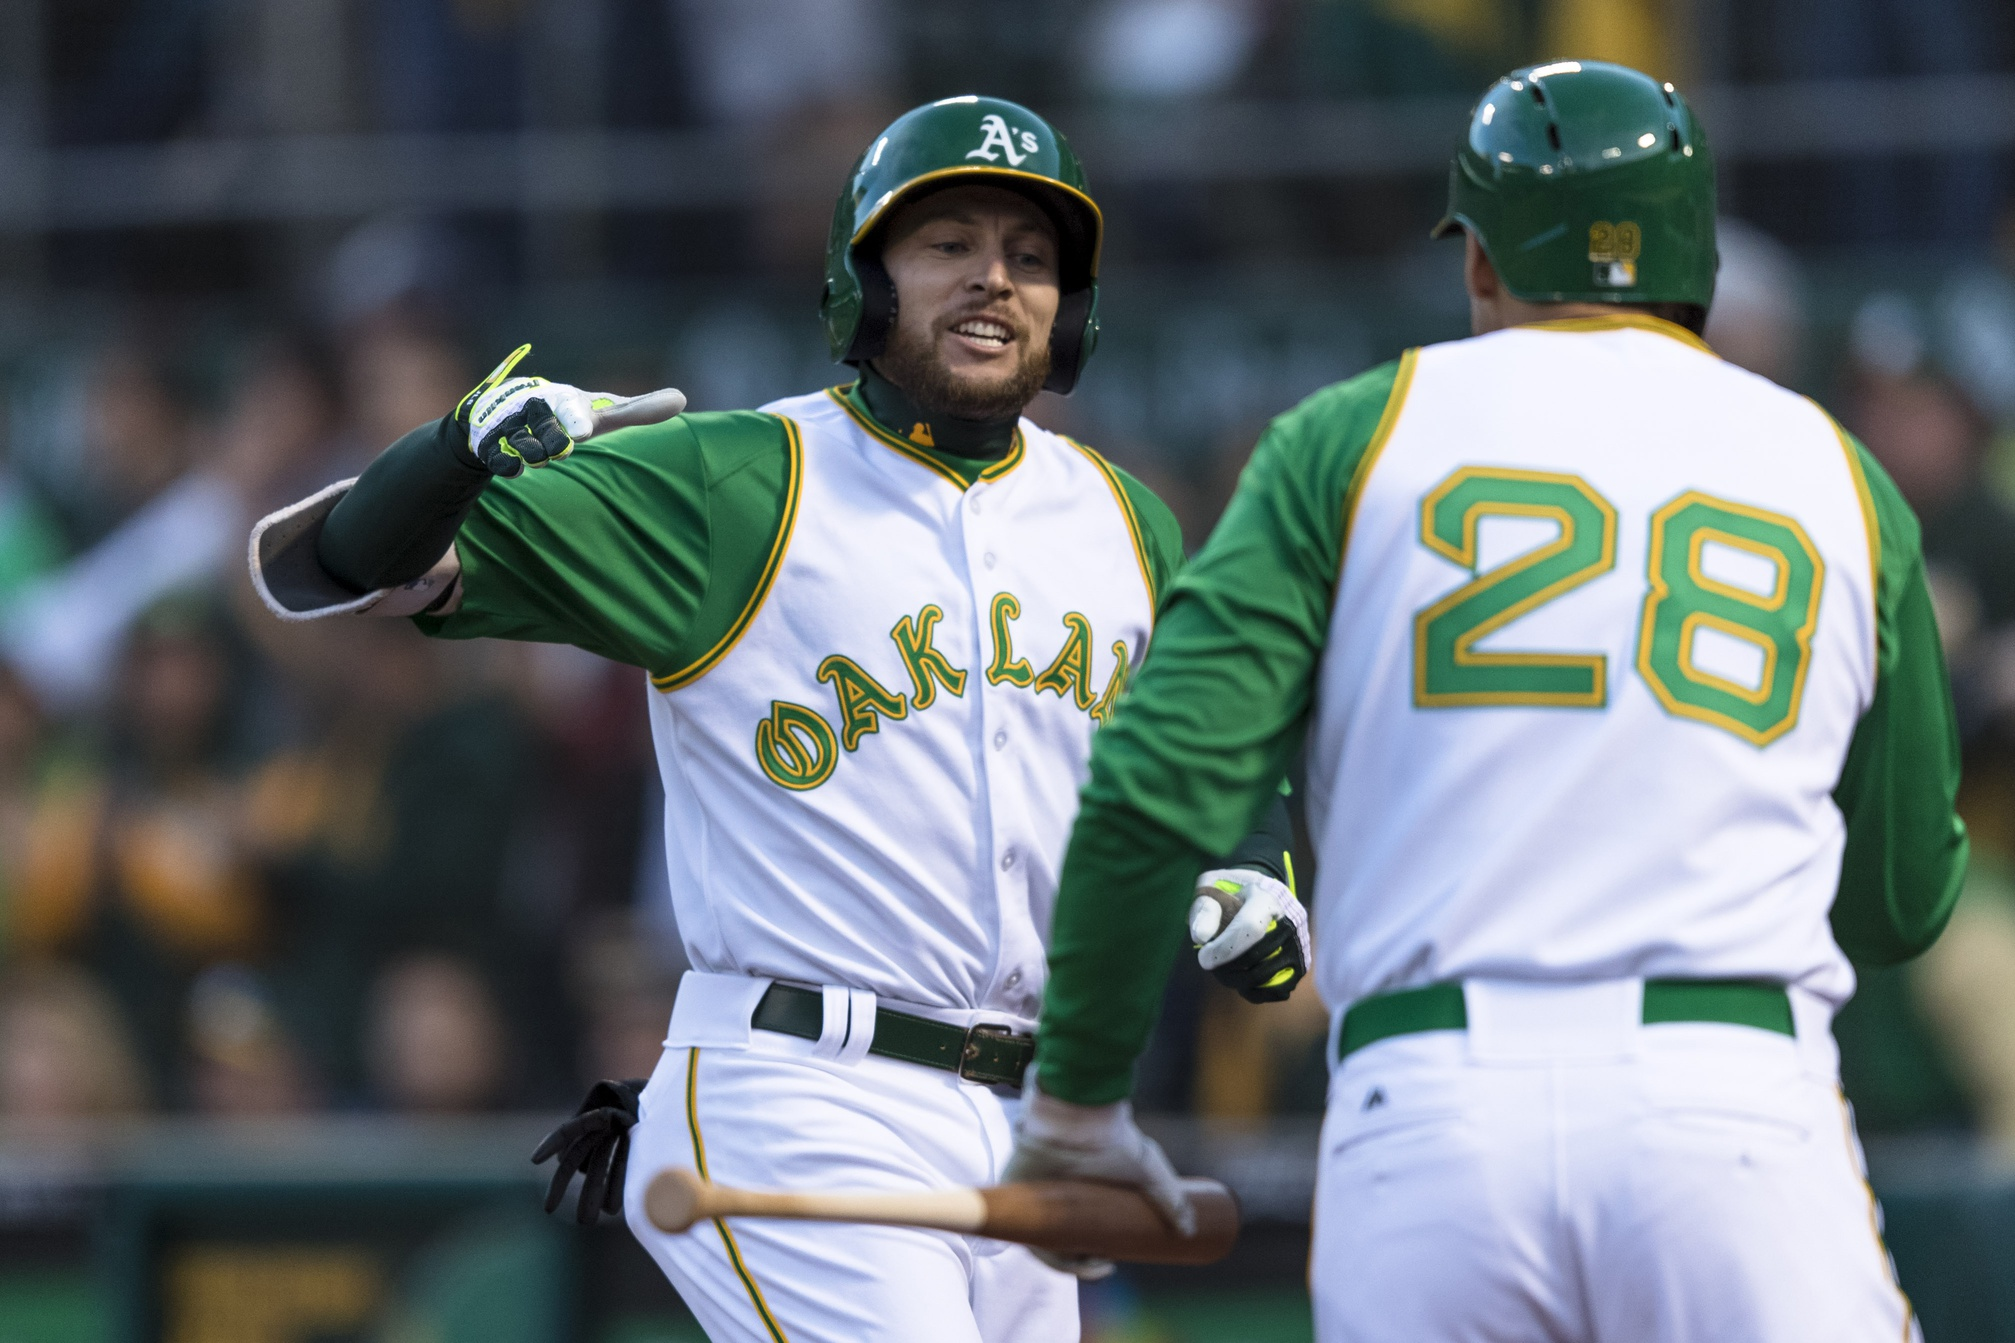 Apr 17, 2018; Oakland, CA, USA; Oakland Athletics second baseman Jed Lowrie (8) celebrates with first baseman Matt Olson (28) after hitting a solo home run against the Chicago White Sox in the first inning at Oakland Coliseum. Mandatory Credit: John Hefti-USA TODAY Sports